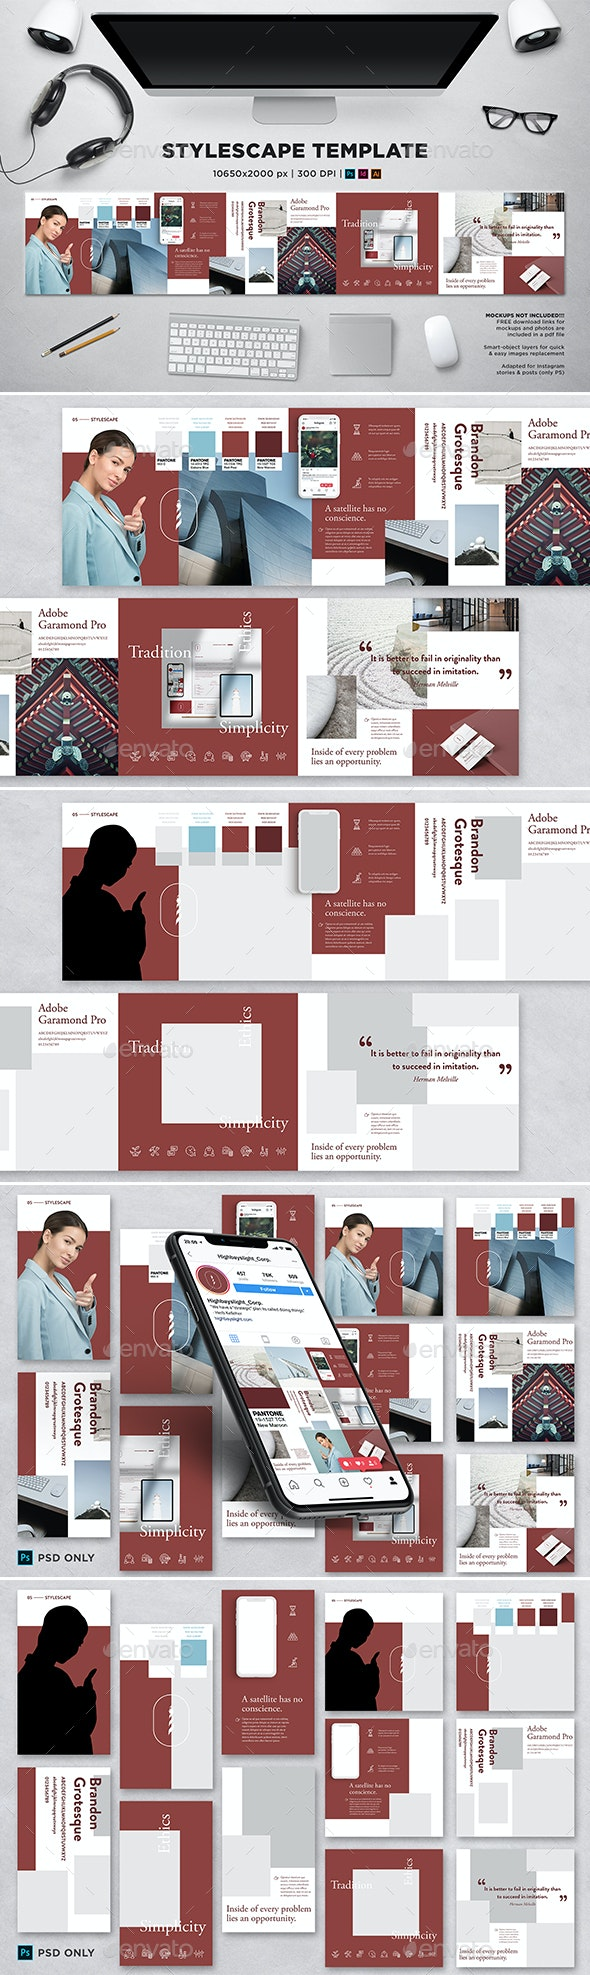 Stylescape / Moodboard Template 05 - Print Templates